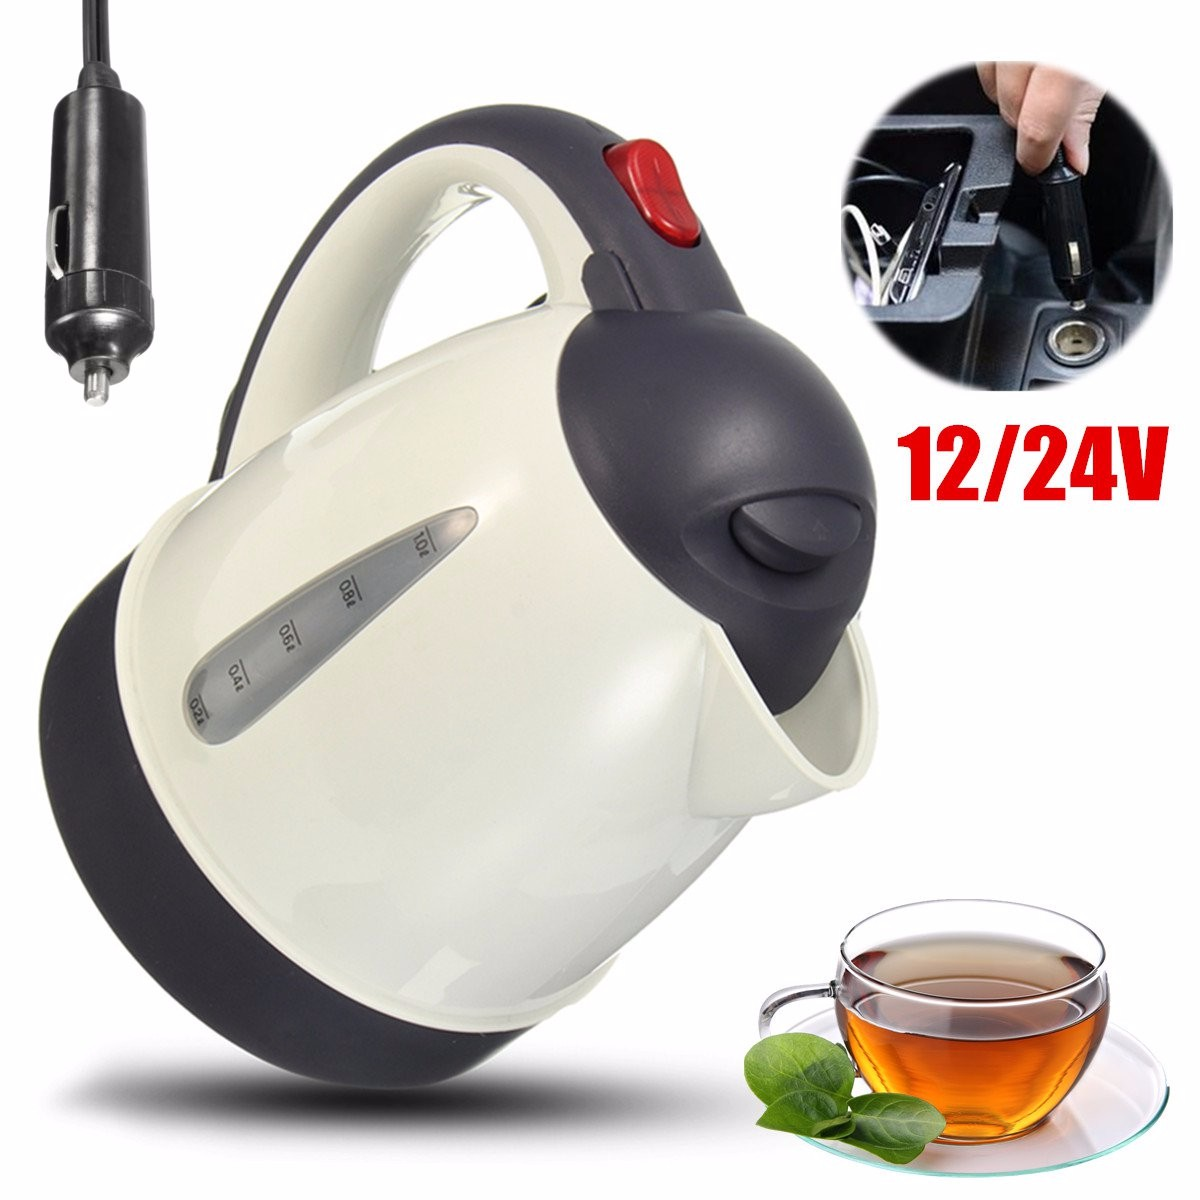 High Grade 1000ml Car Portable Water Heater Travel Mains Kettle Auto 12v 24v For Tea Coffee 304 Stainless Steel In Heating Fans From Automobiles